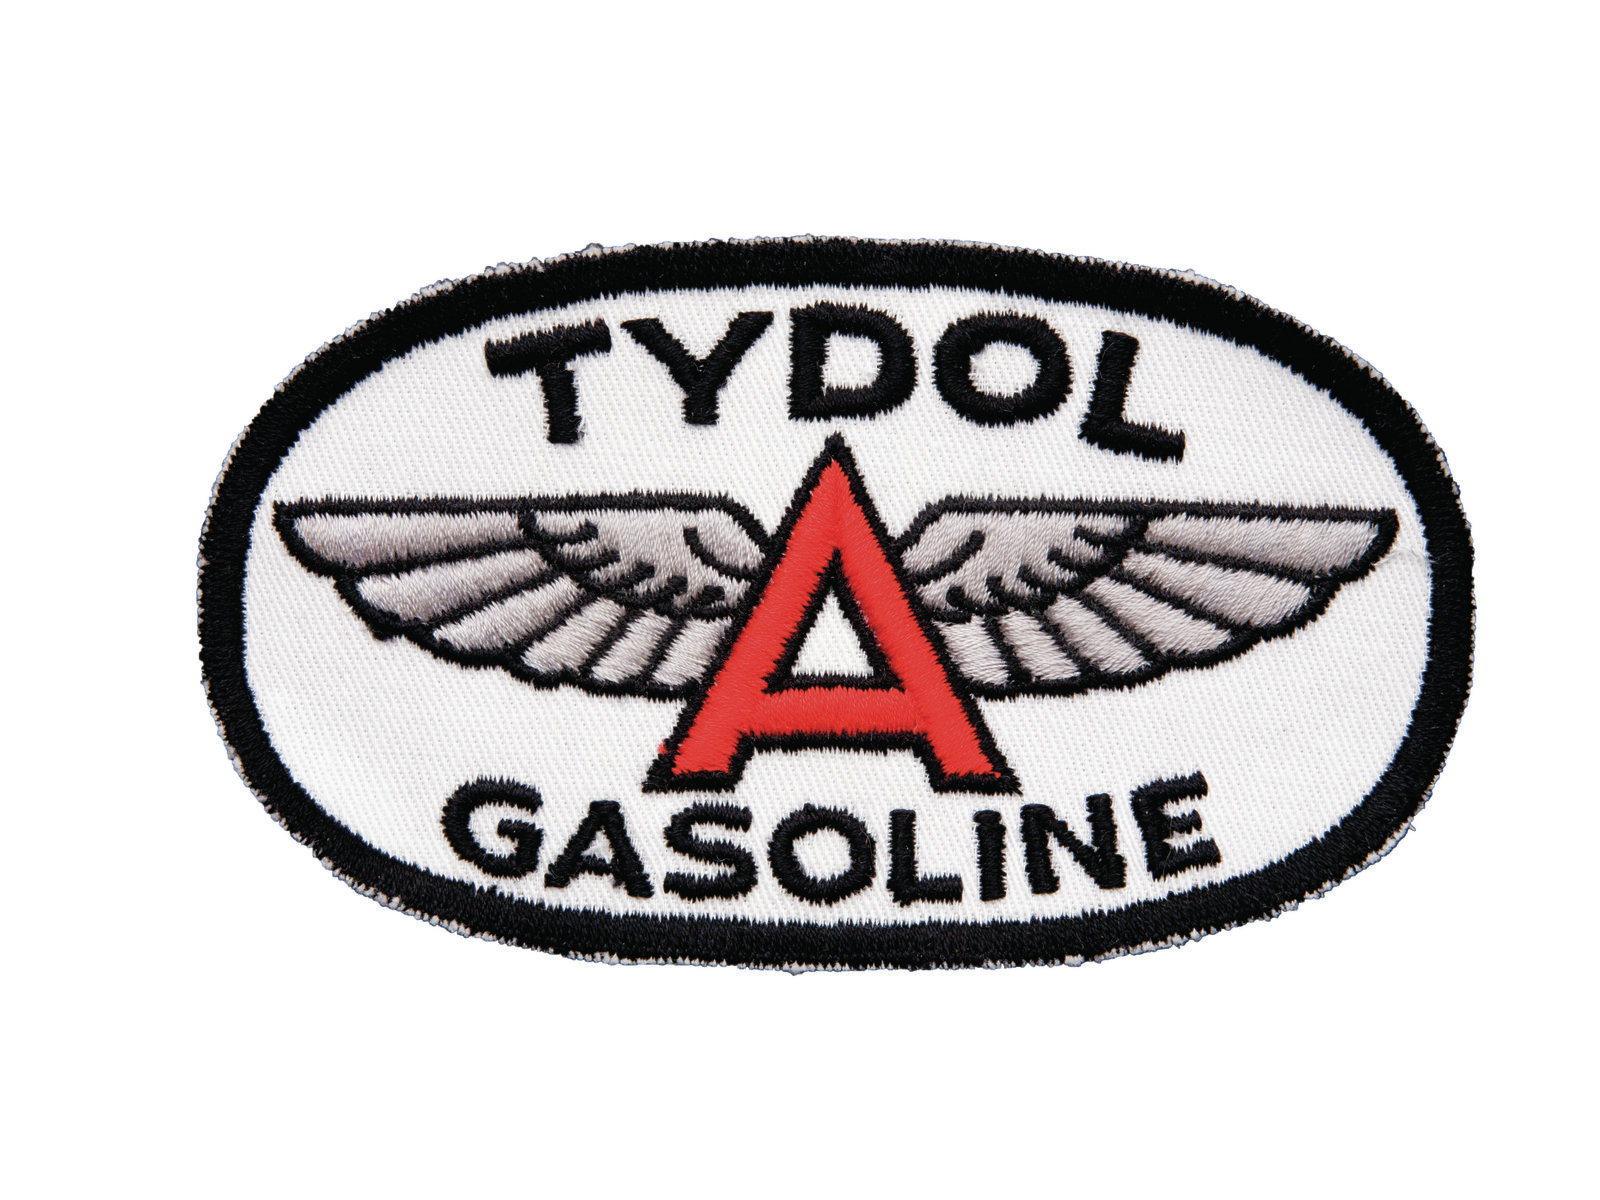 04] Beginning in 1932, J. Paul Getty's Associated Oil Company used the Flying A brand for its premium gasoline. When Getty purchased the Tidewater Oil Company in 1937 and merged the two companies, gas stations on the West Coast became Associated Flying A, while East Coast stations marketed fuel as Tydol Flying A. Today, the company is known as Royal Petroleum Company, and the Flying A brand is still used in Northern California.